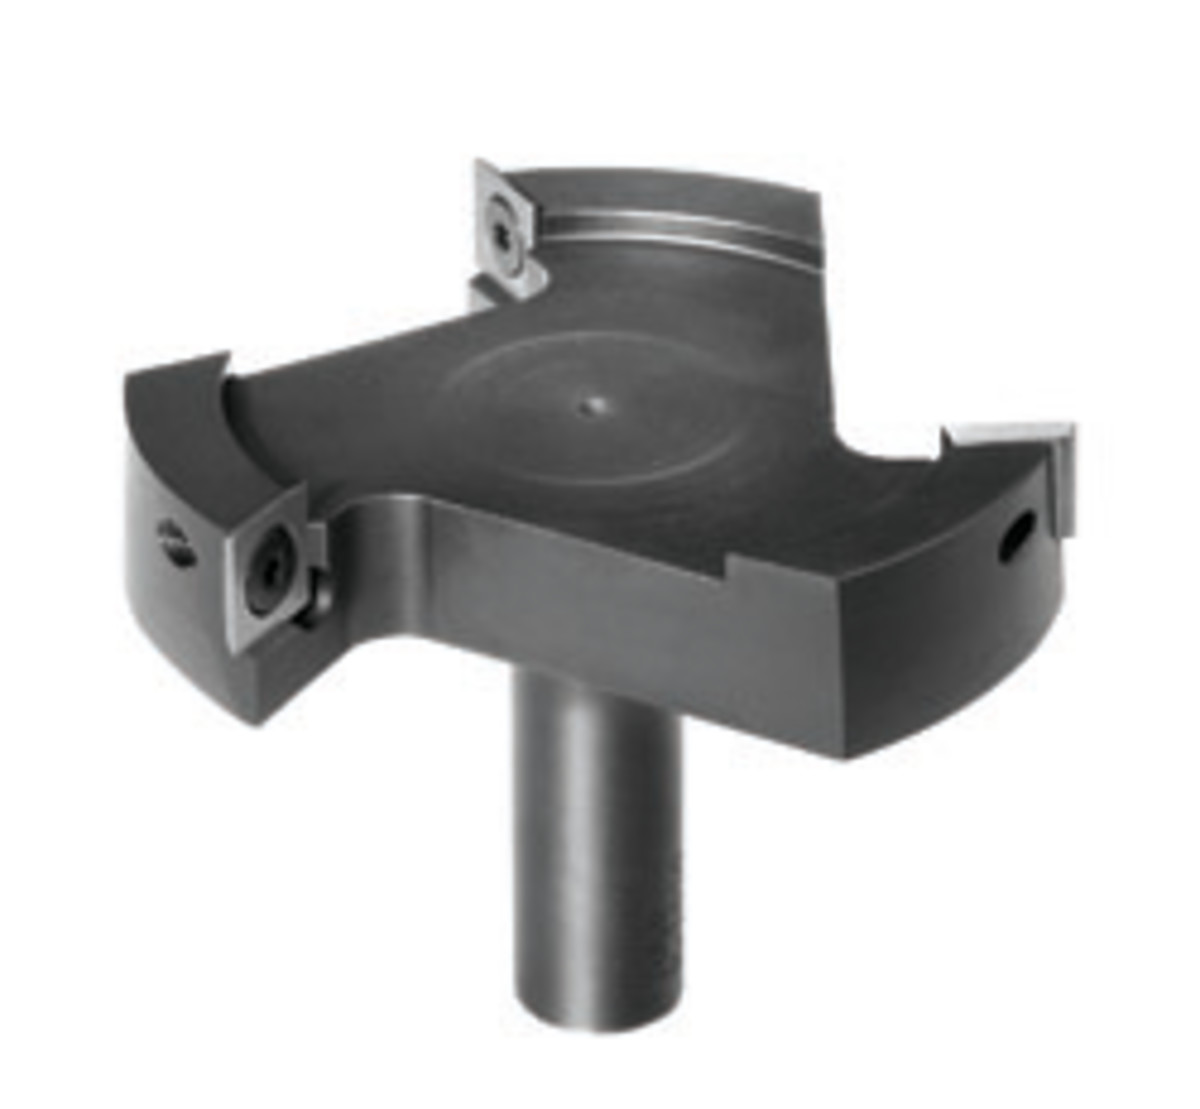 An insert spoilboard cutter from the Vortex series.